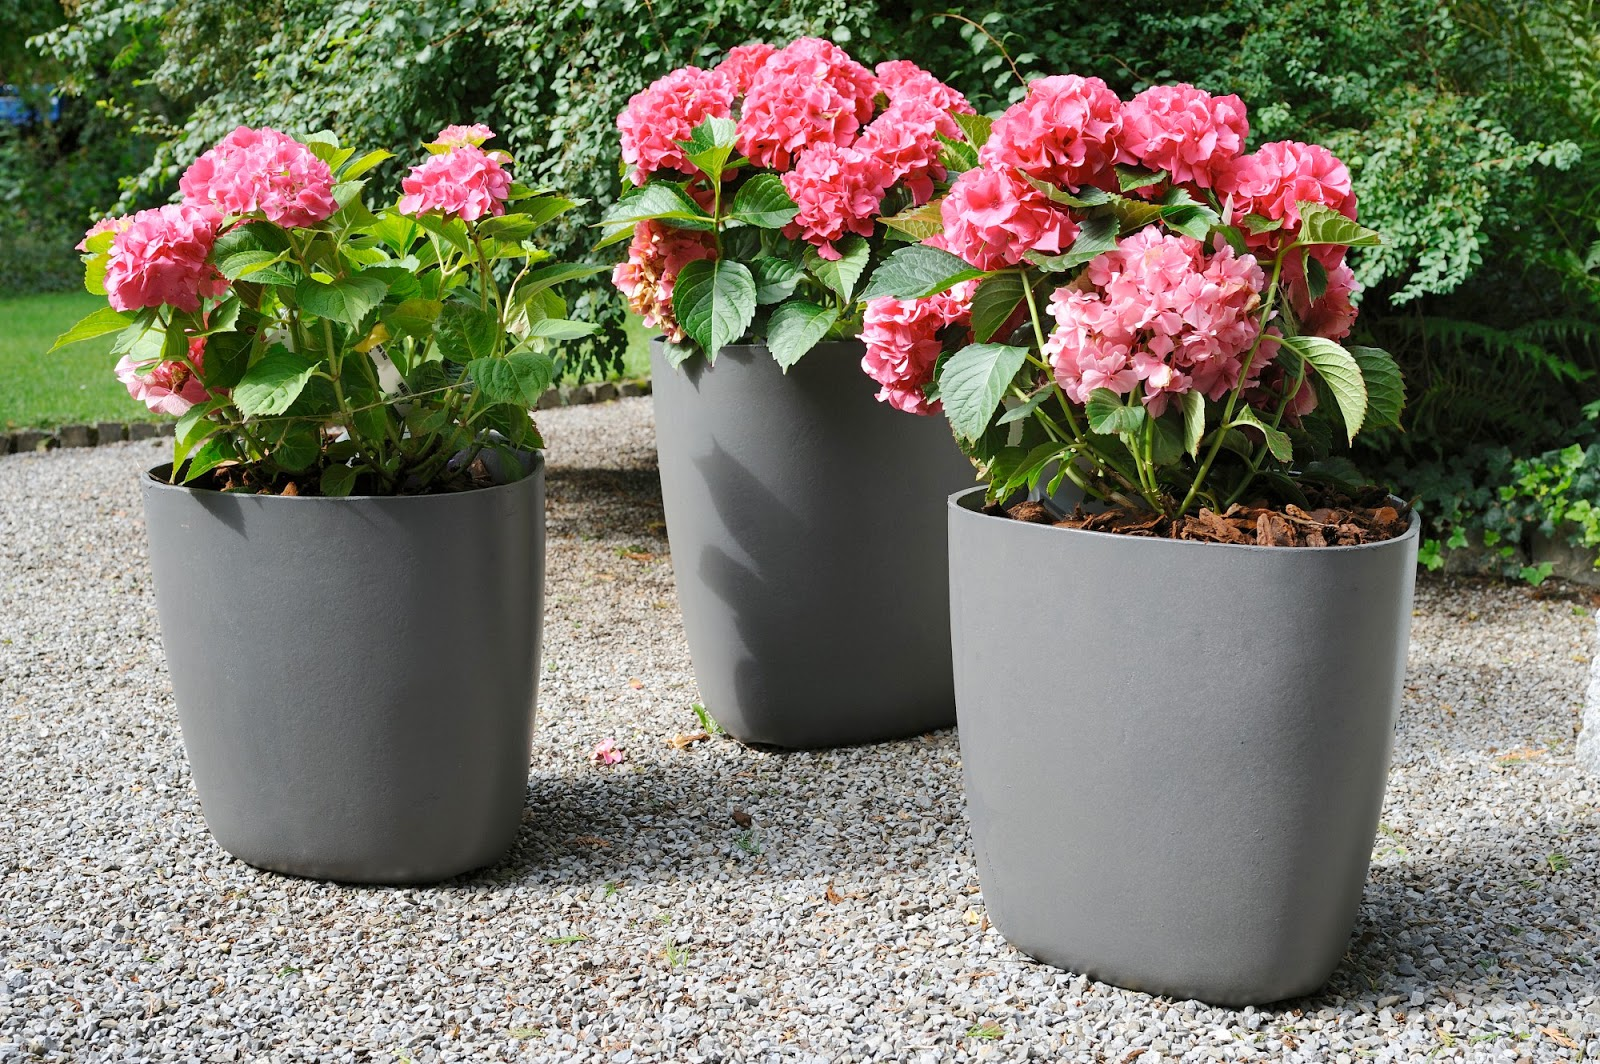 garden pots and planters outdoor pots and planters  houzz  best  - patio garden planter pots modern tokyo planter modern design